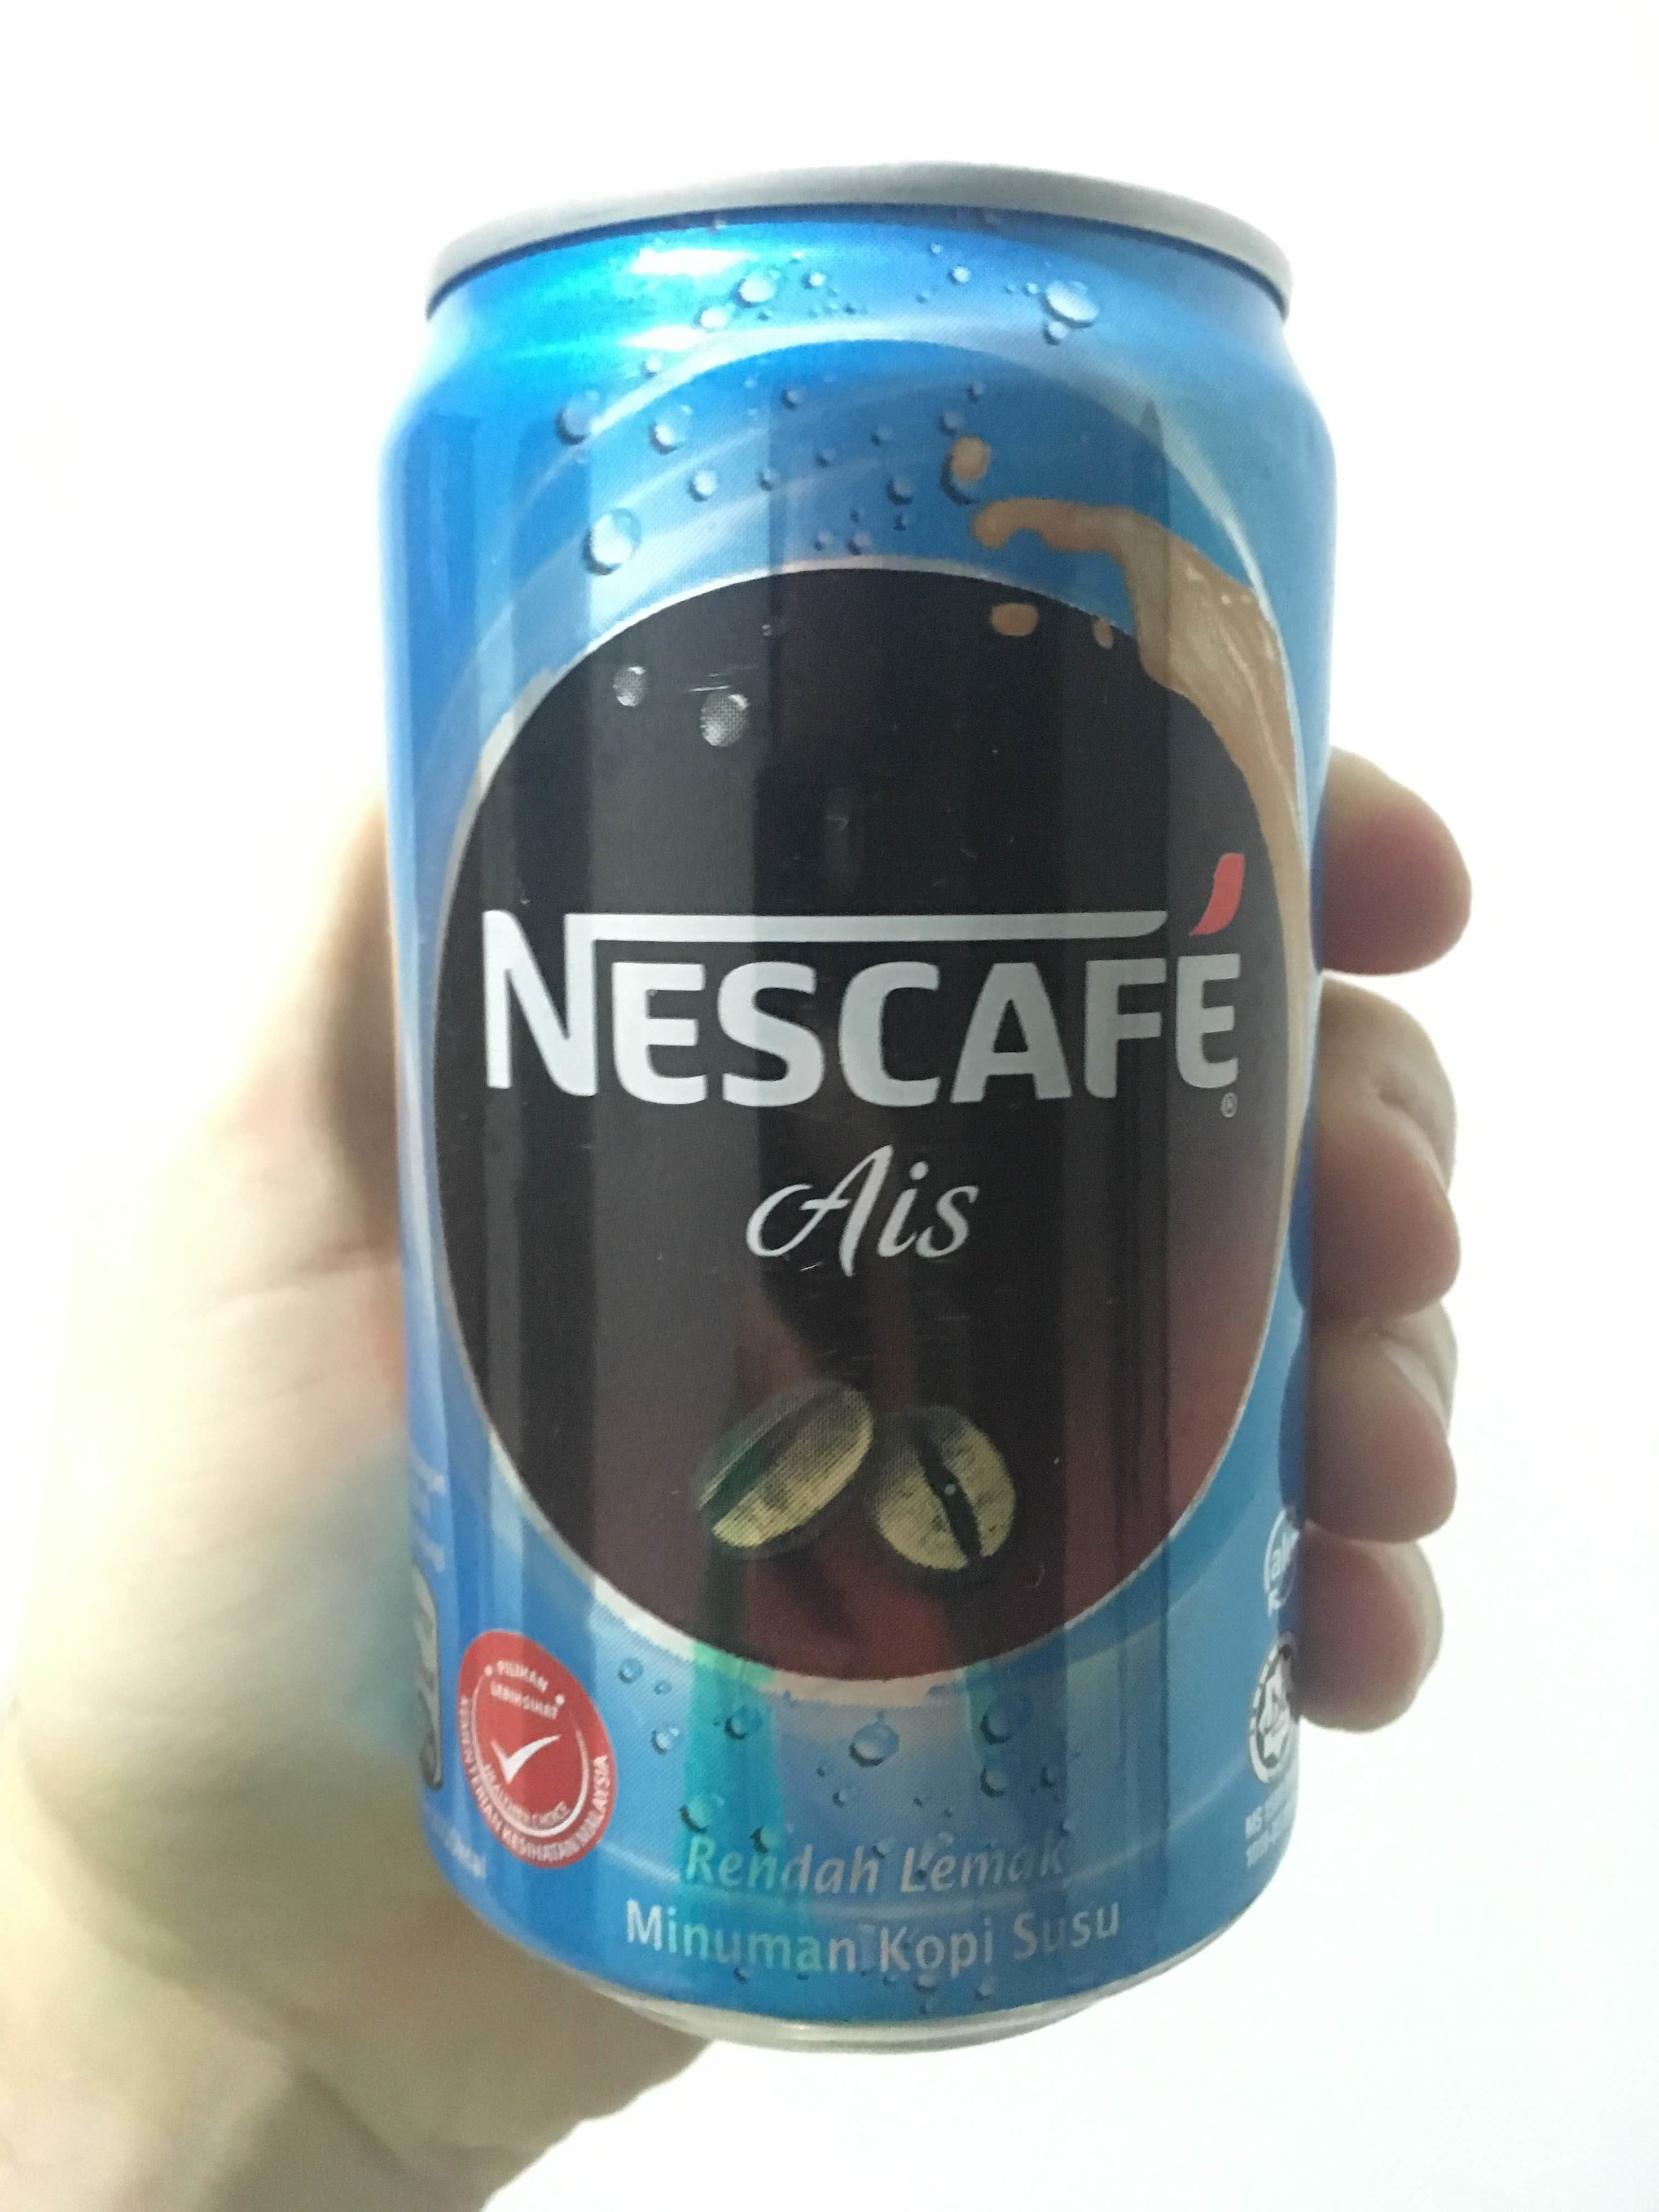 Nescafe Ais from Malaysia - cooling canned coffee